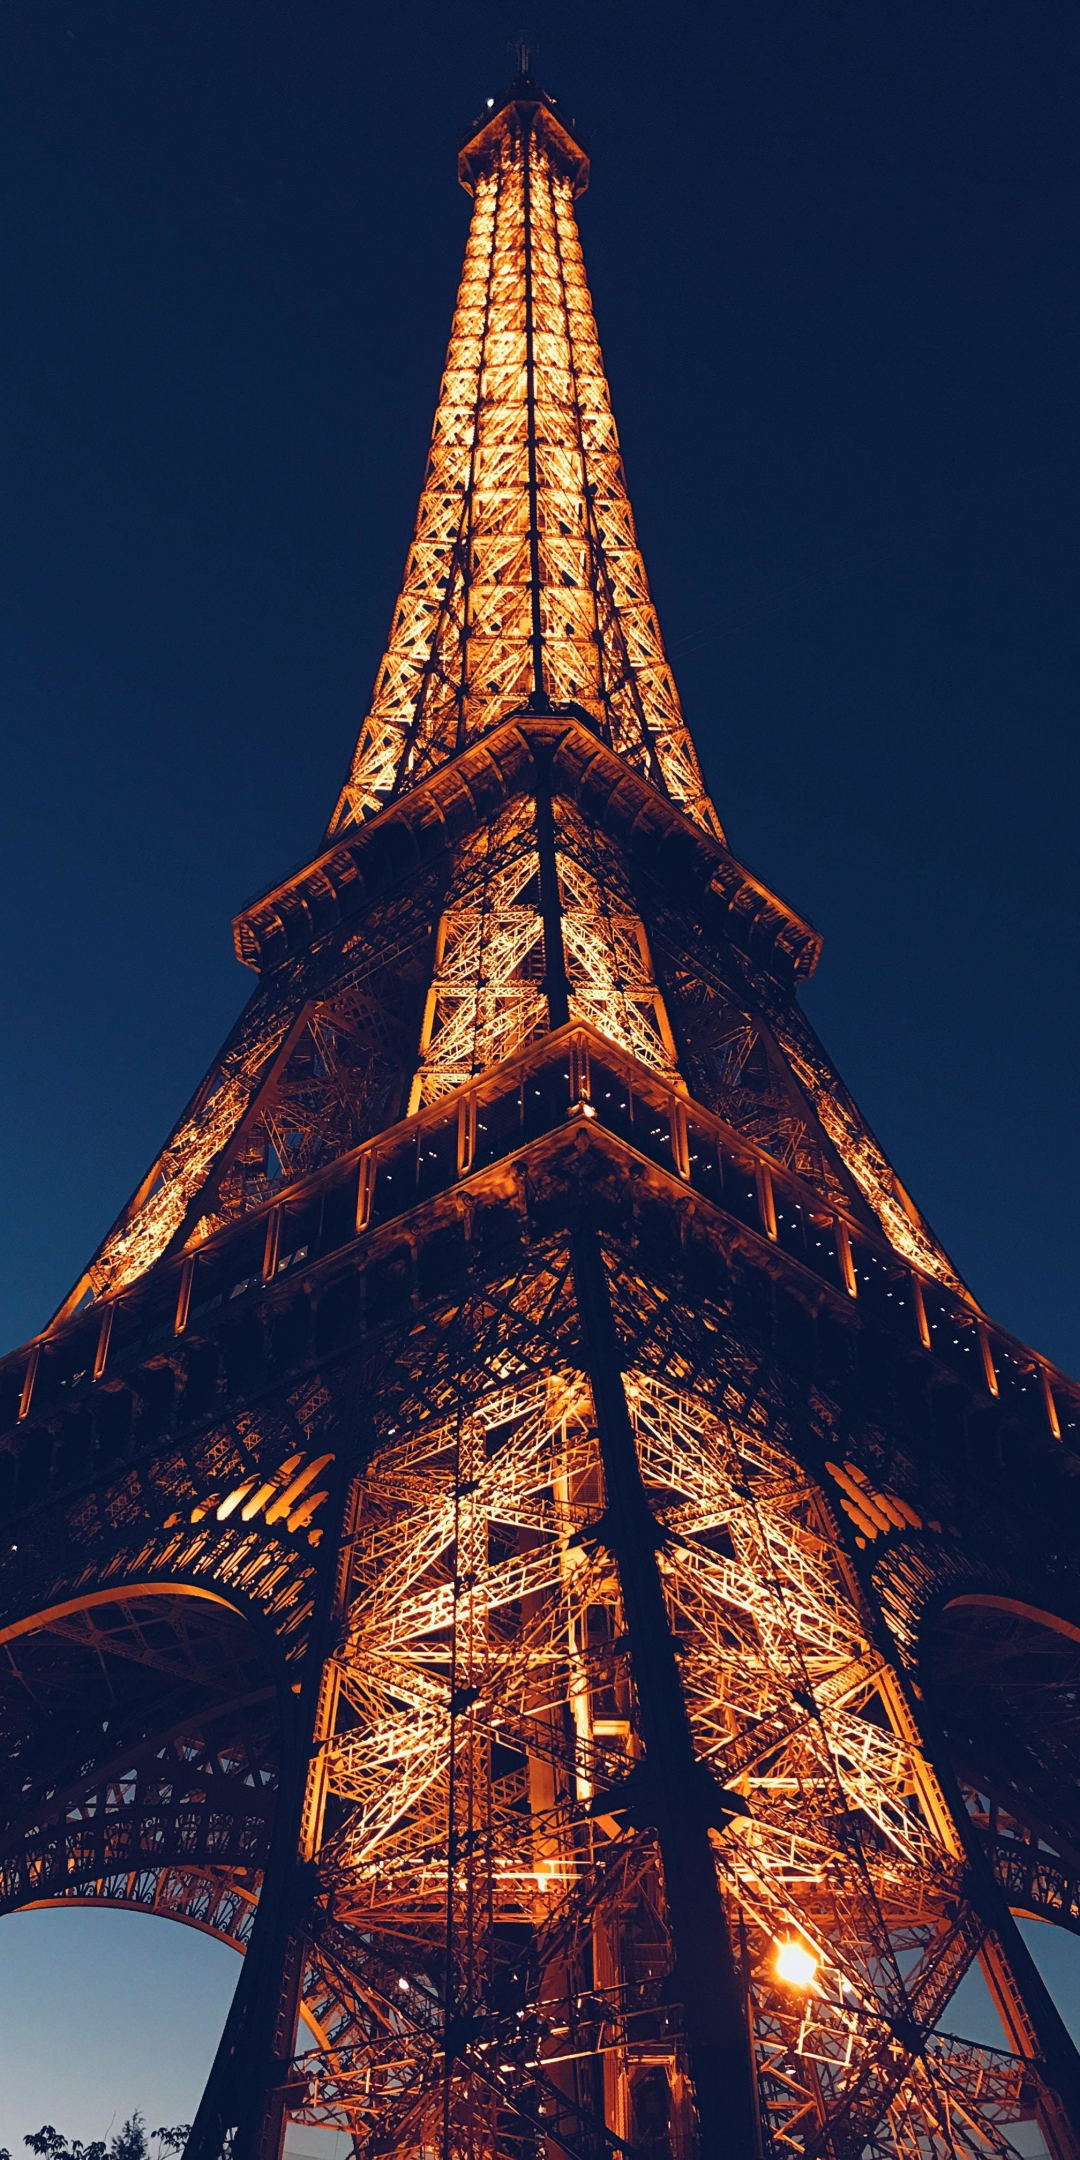 Download 1080x2160 Wallpaper Eiffel Tower City Paris Night Architecture Honor 7x Honor 9 Lite Honor View 10 Hd Image Background 18369